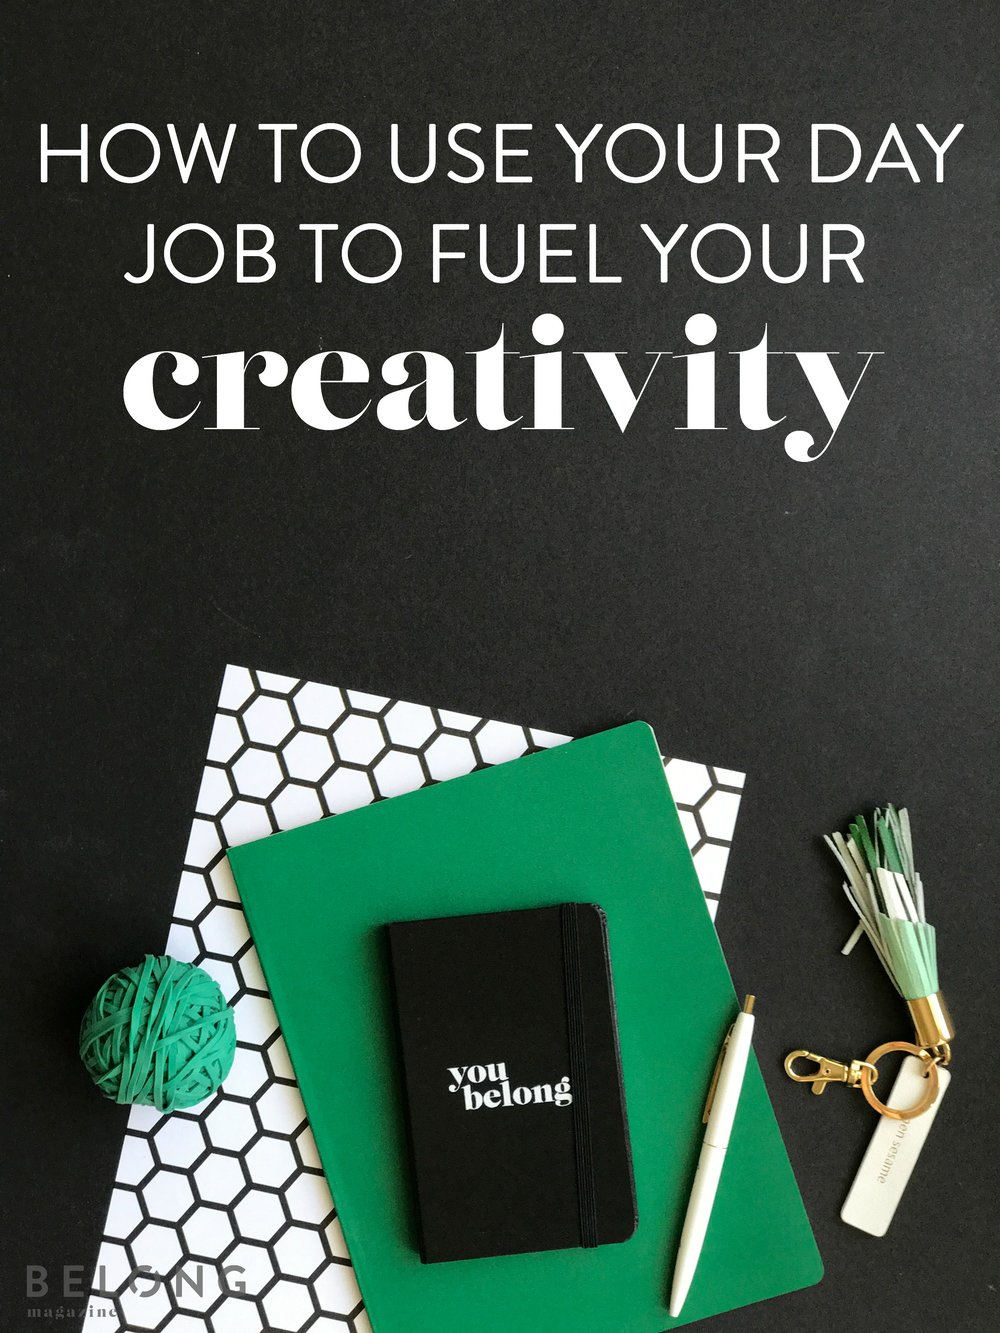 how to use your day job to fuel your creativity by nancy ingersoll as featured on the Belong Magazine blog for the creative entrepreneur, working woman, female business owner, blogger and beyond.